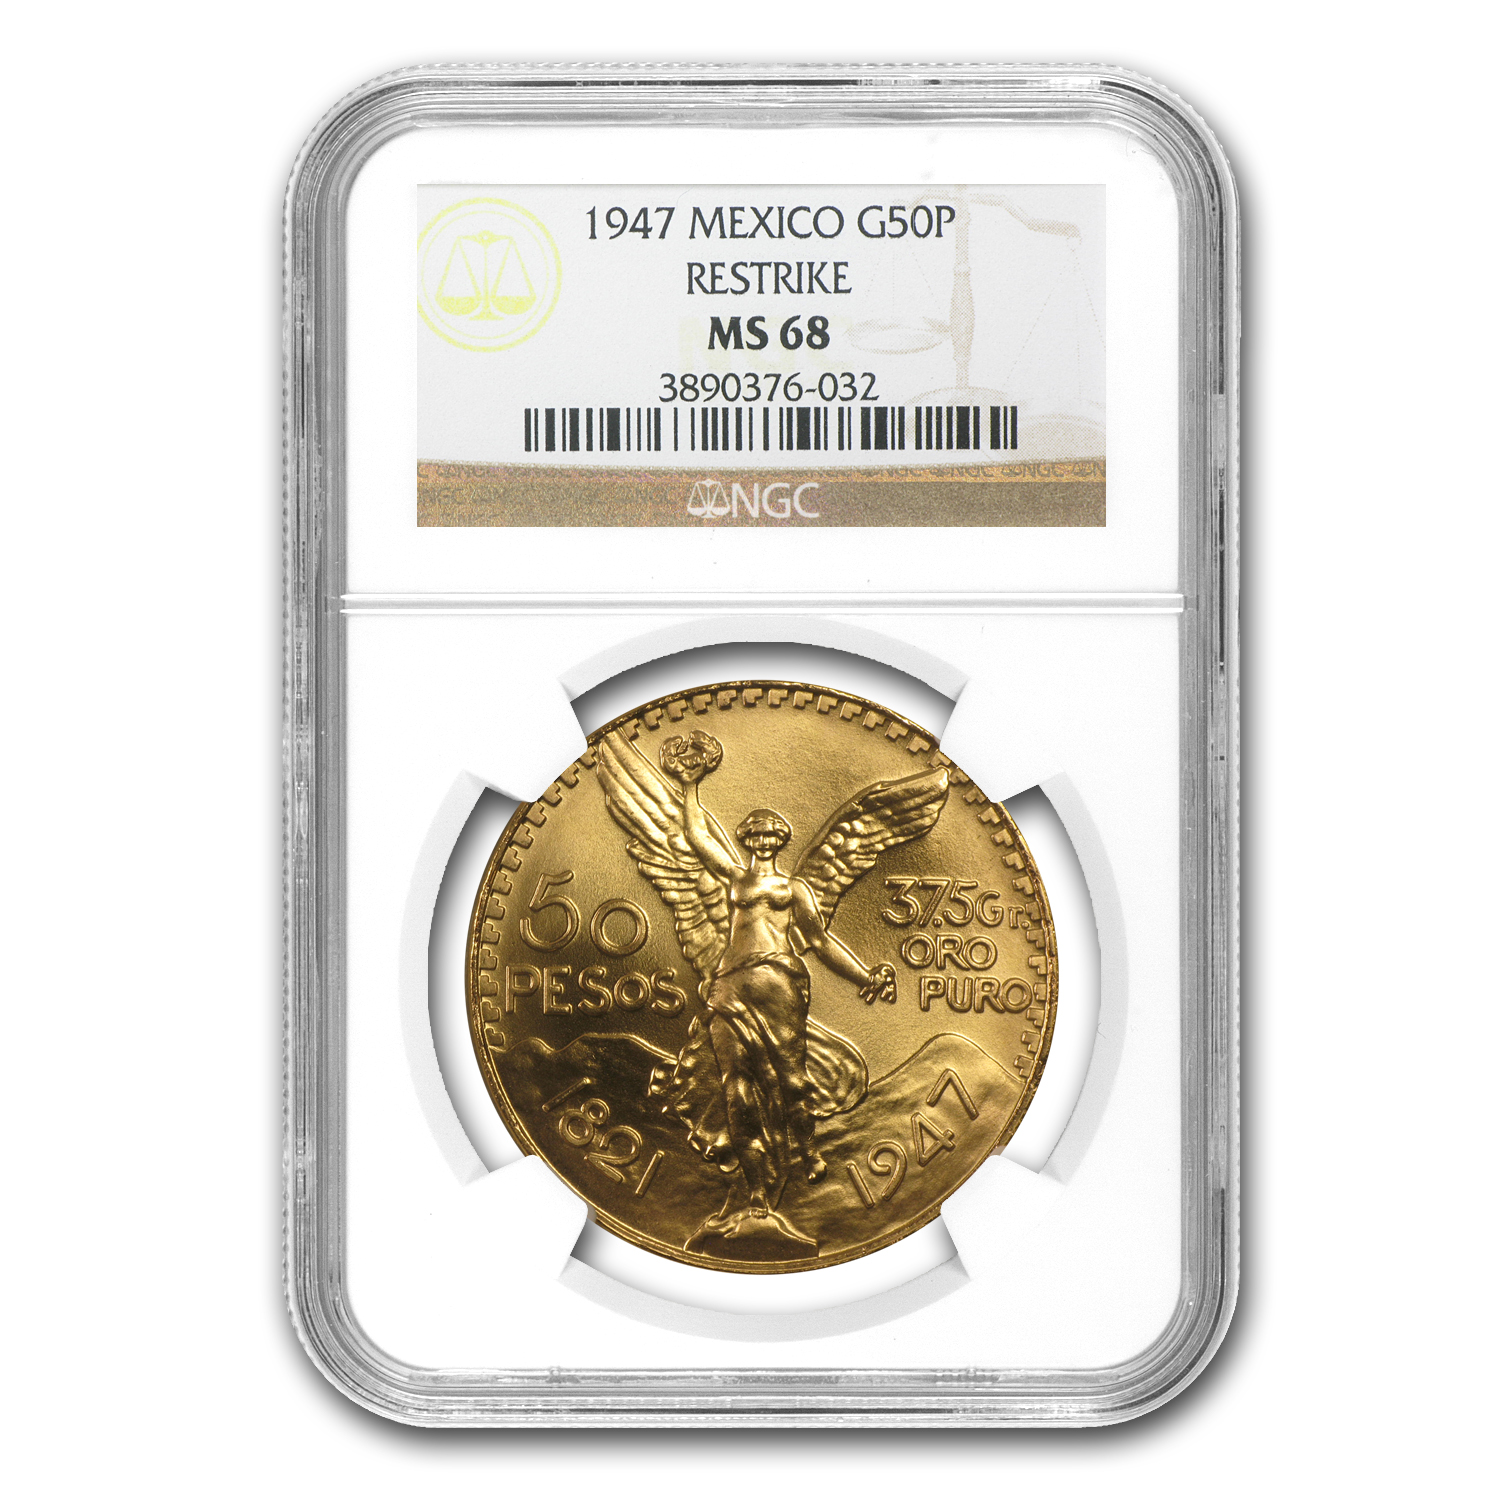 1947 Mexico Gold 50 Pesos MS-68 NGC (Restrike)